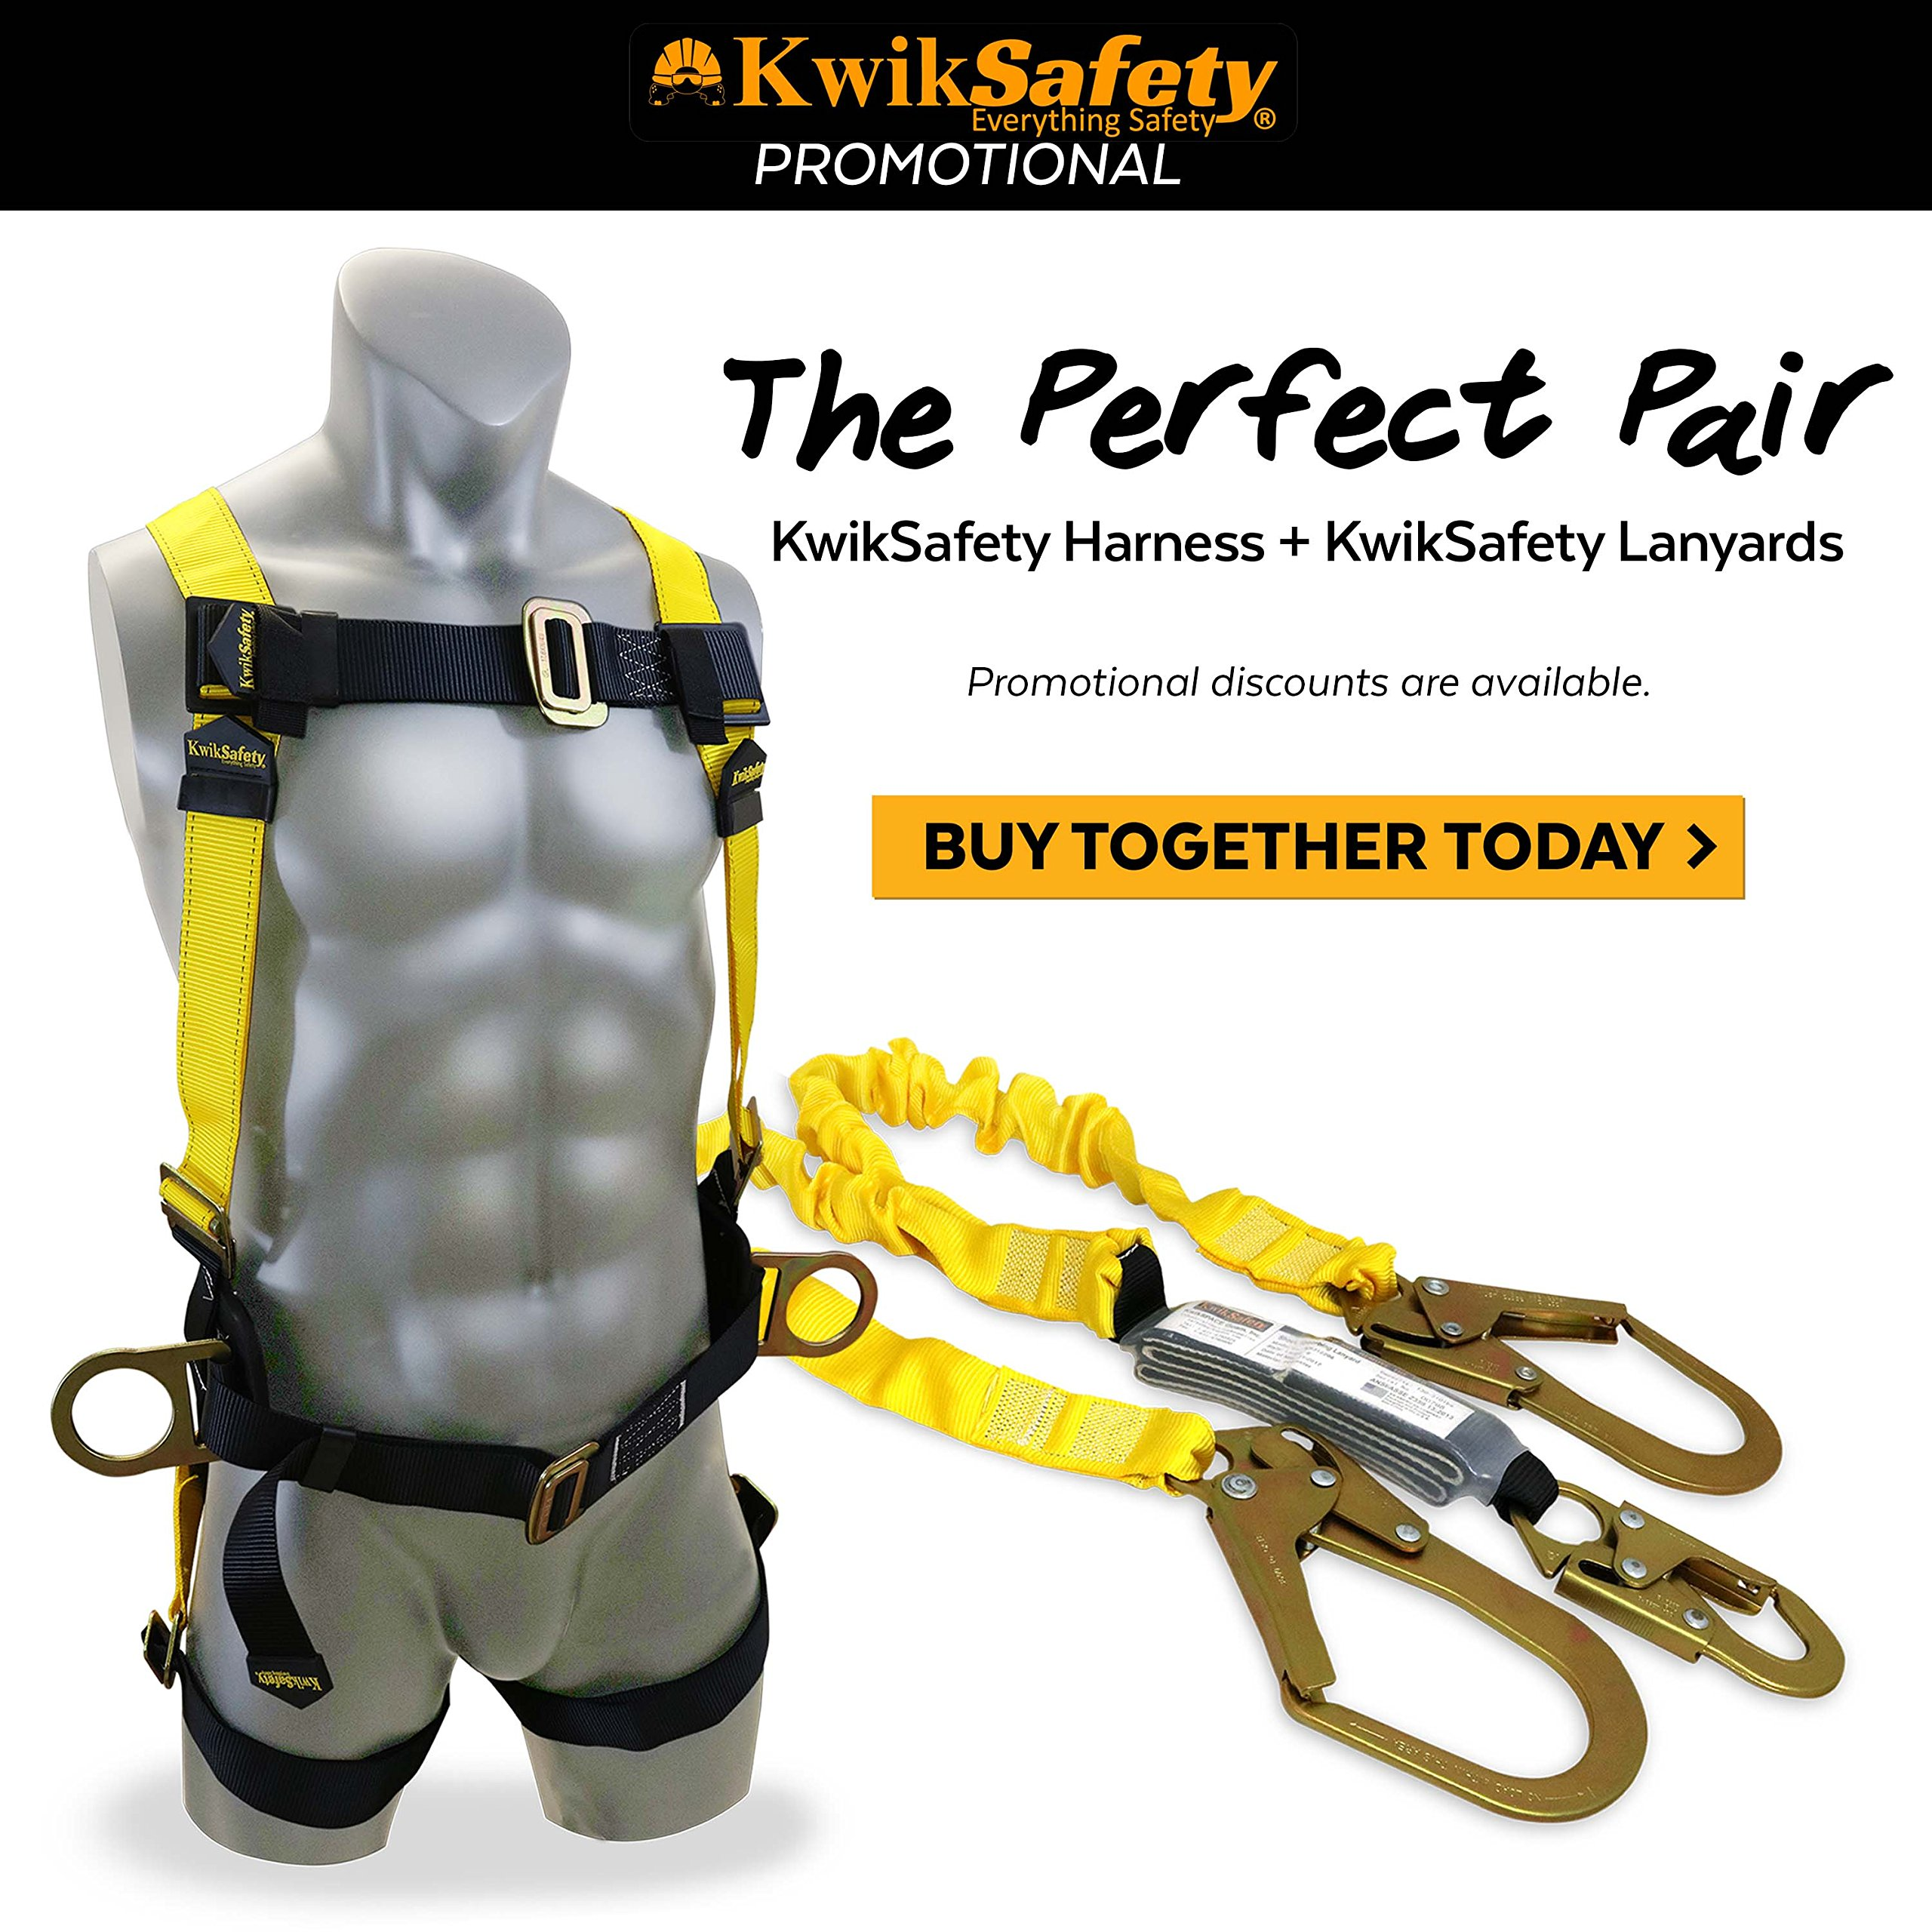 KwikSafety PYTHON   Double Leg 6ft Tubular Stretch Safety Lanyard   OSHA Approved ANSI Compliant Fall Protection   EXTERNAL Shock Absorber   Construction Arborist Roofing   Snap & Rebar Hook Connector by KwikSafety (Image #9)